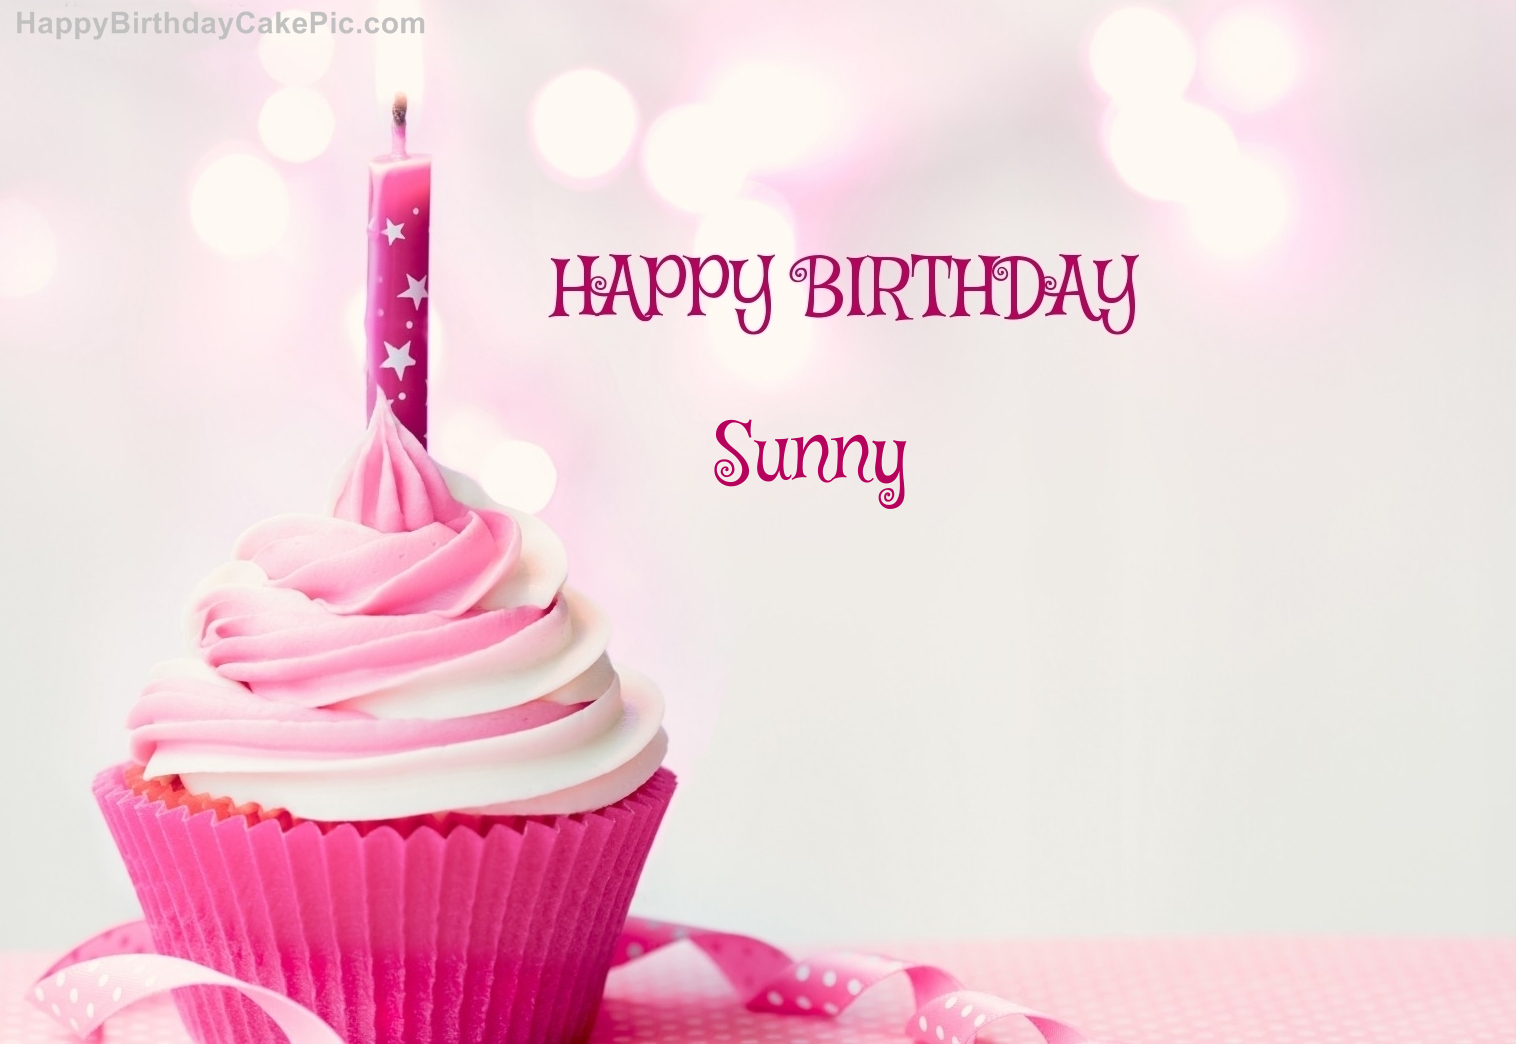 Happy Birthday Cupcake Candle Pink Cake For Sunny